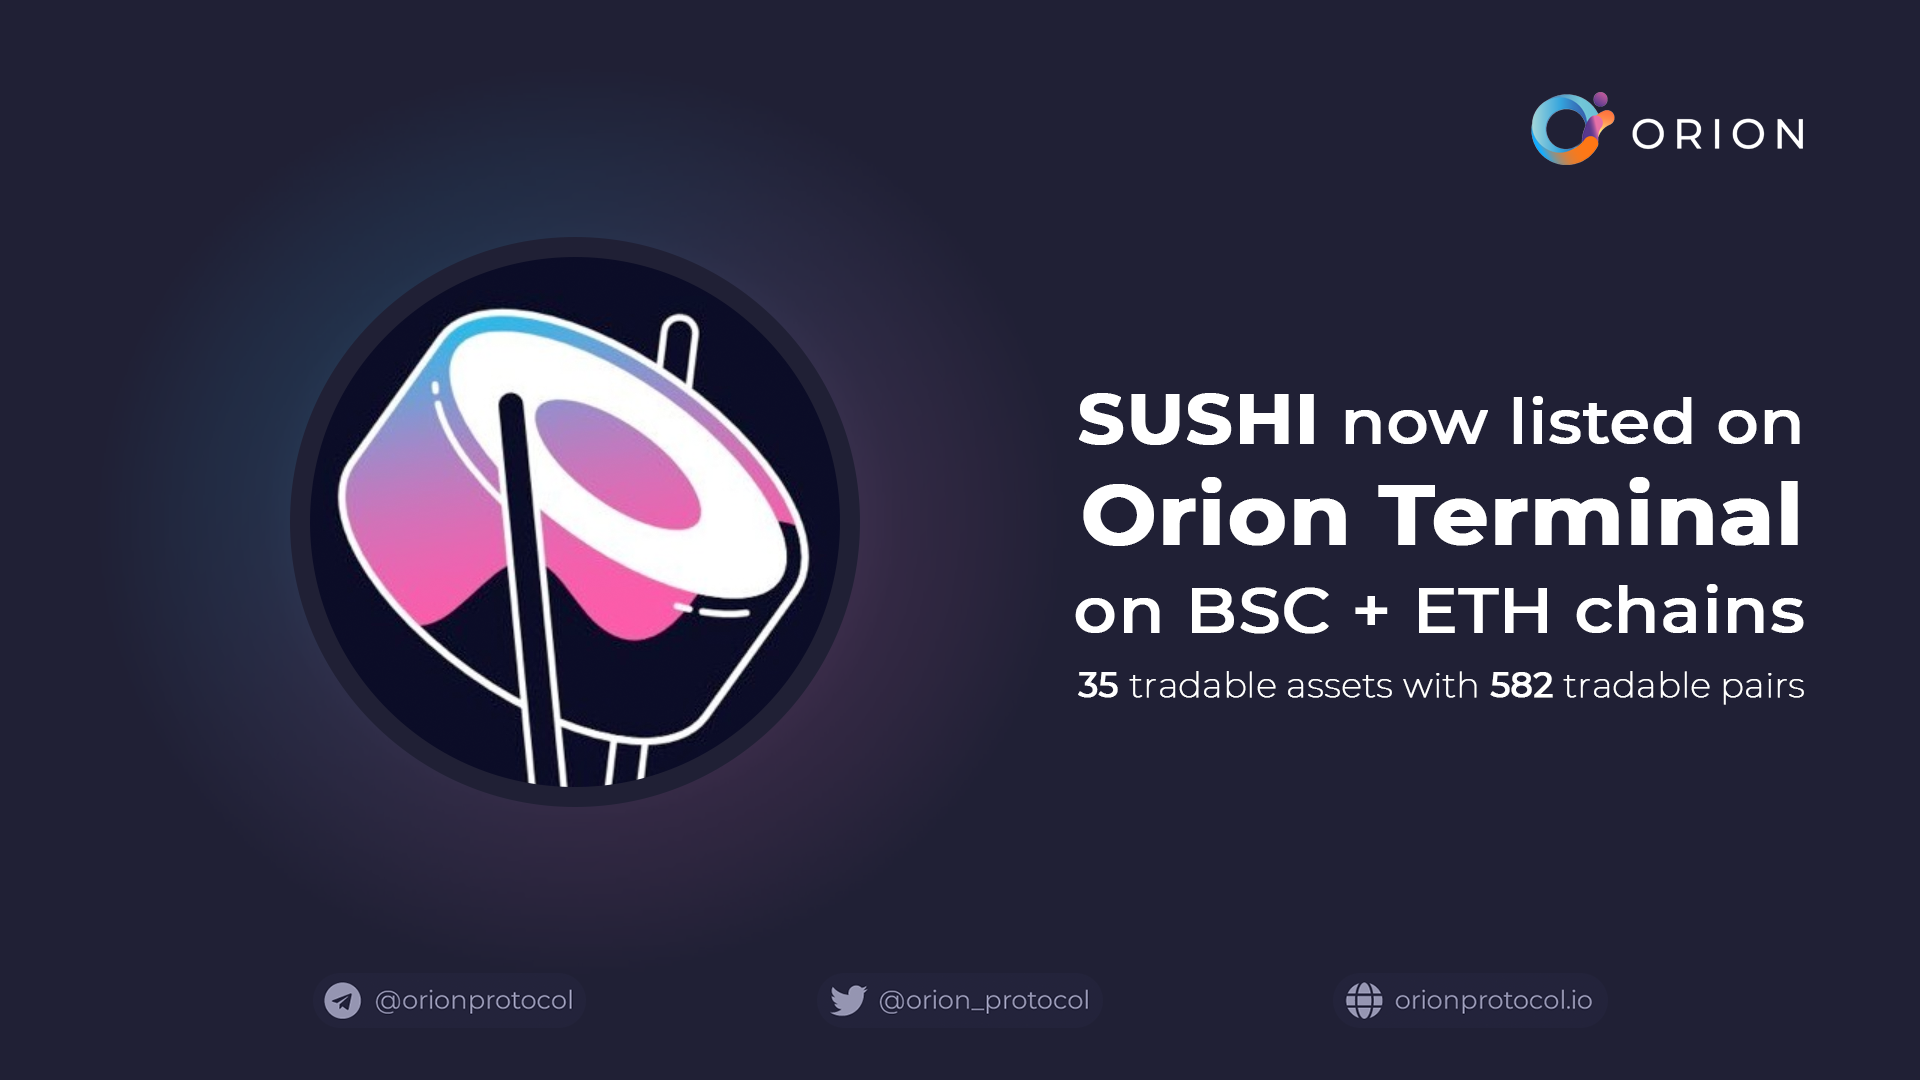 Sushi added to Orion Terminal